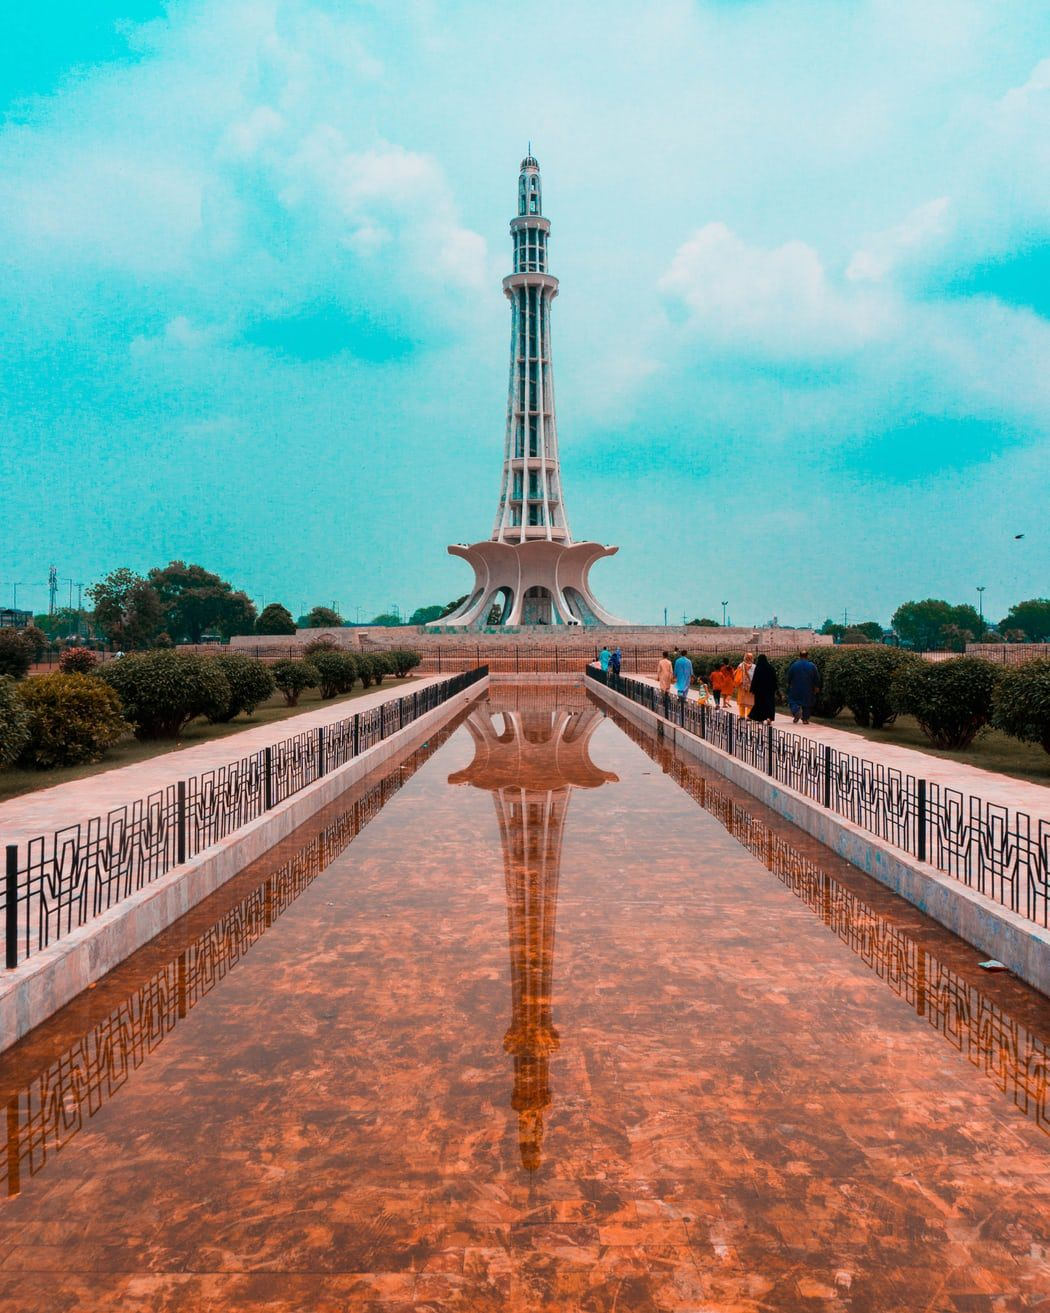 Minar E Pakistan Hd Photo By Hussain Ibrahim Huucyn On